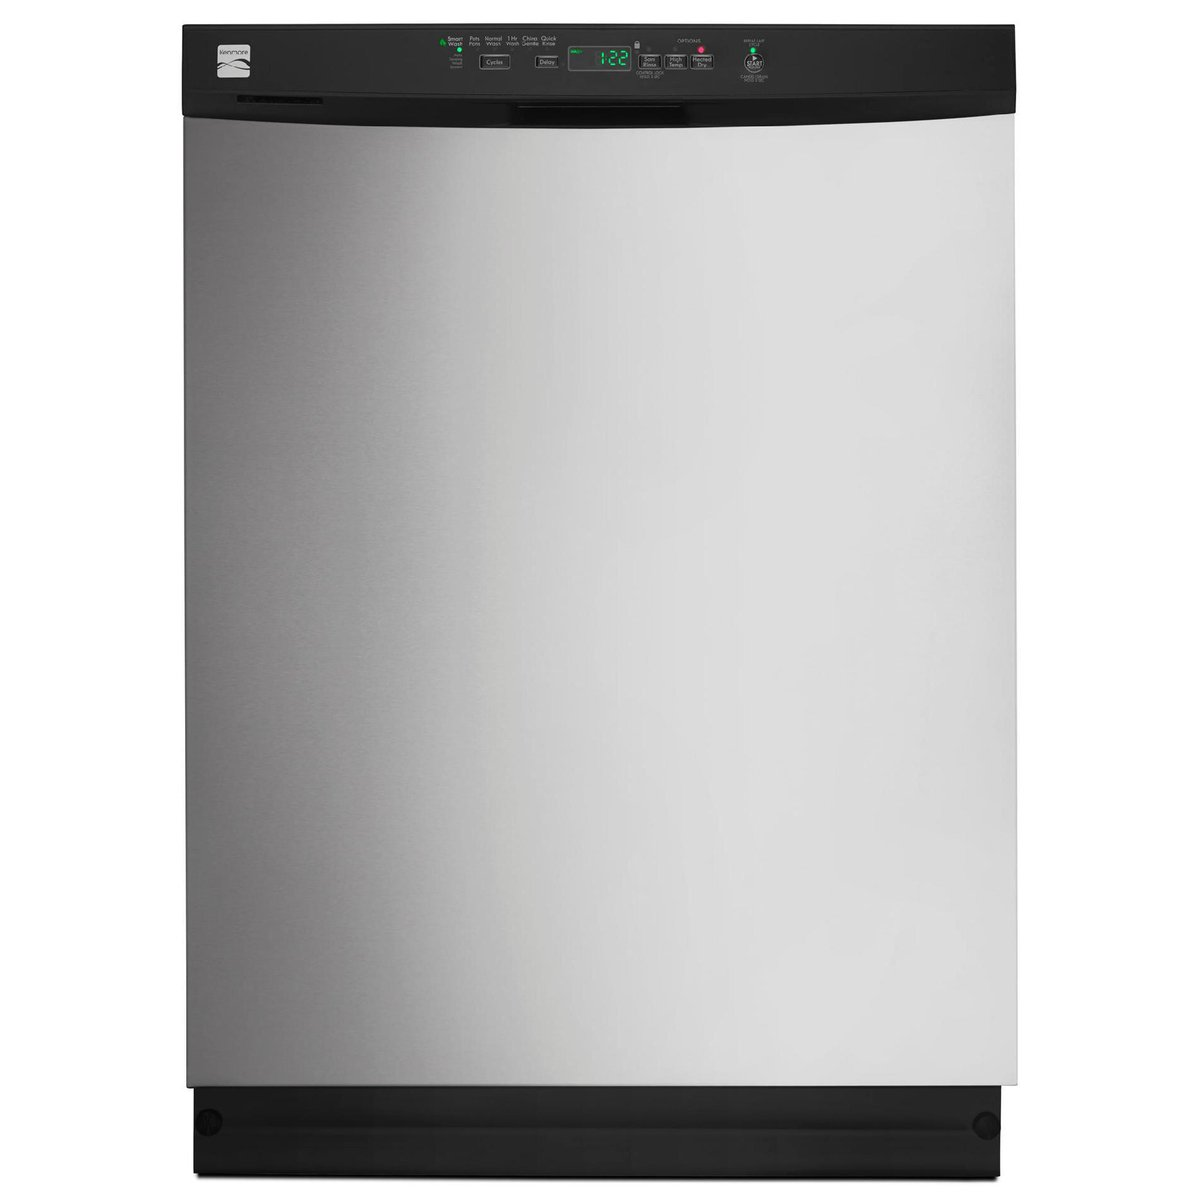 "Kenmore 13093 24"" Built-In Dishwasher with Power Wave Spray Arm, Stainless Steel"